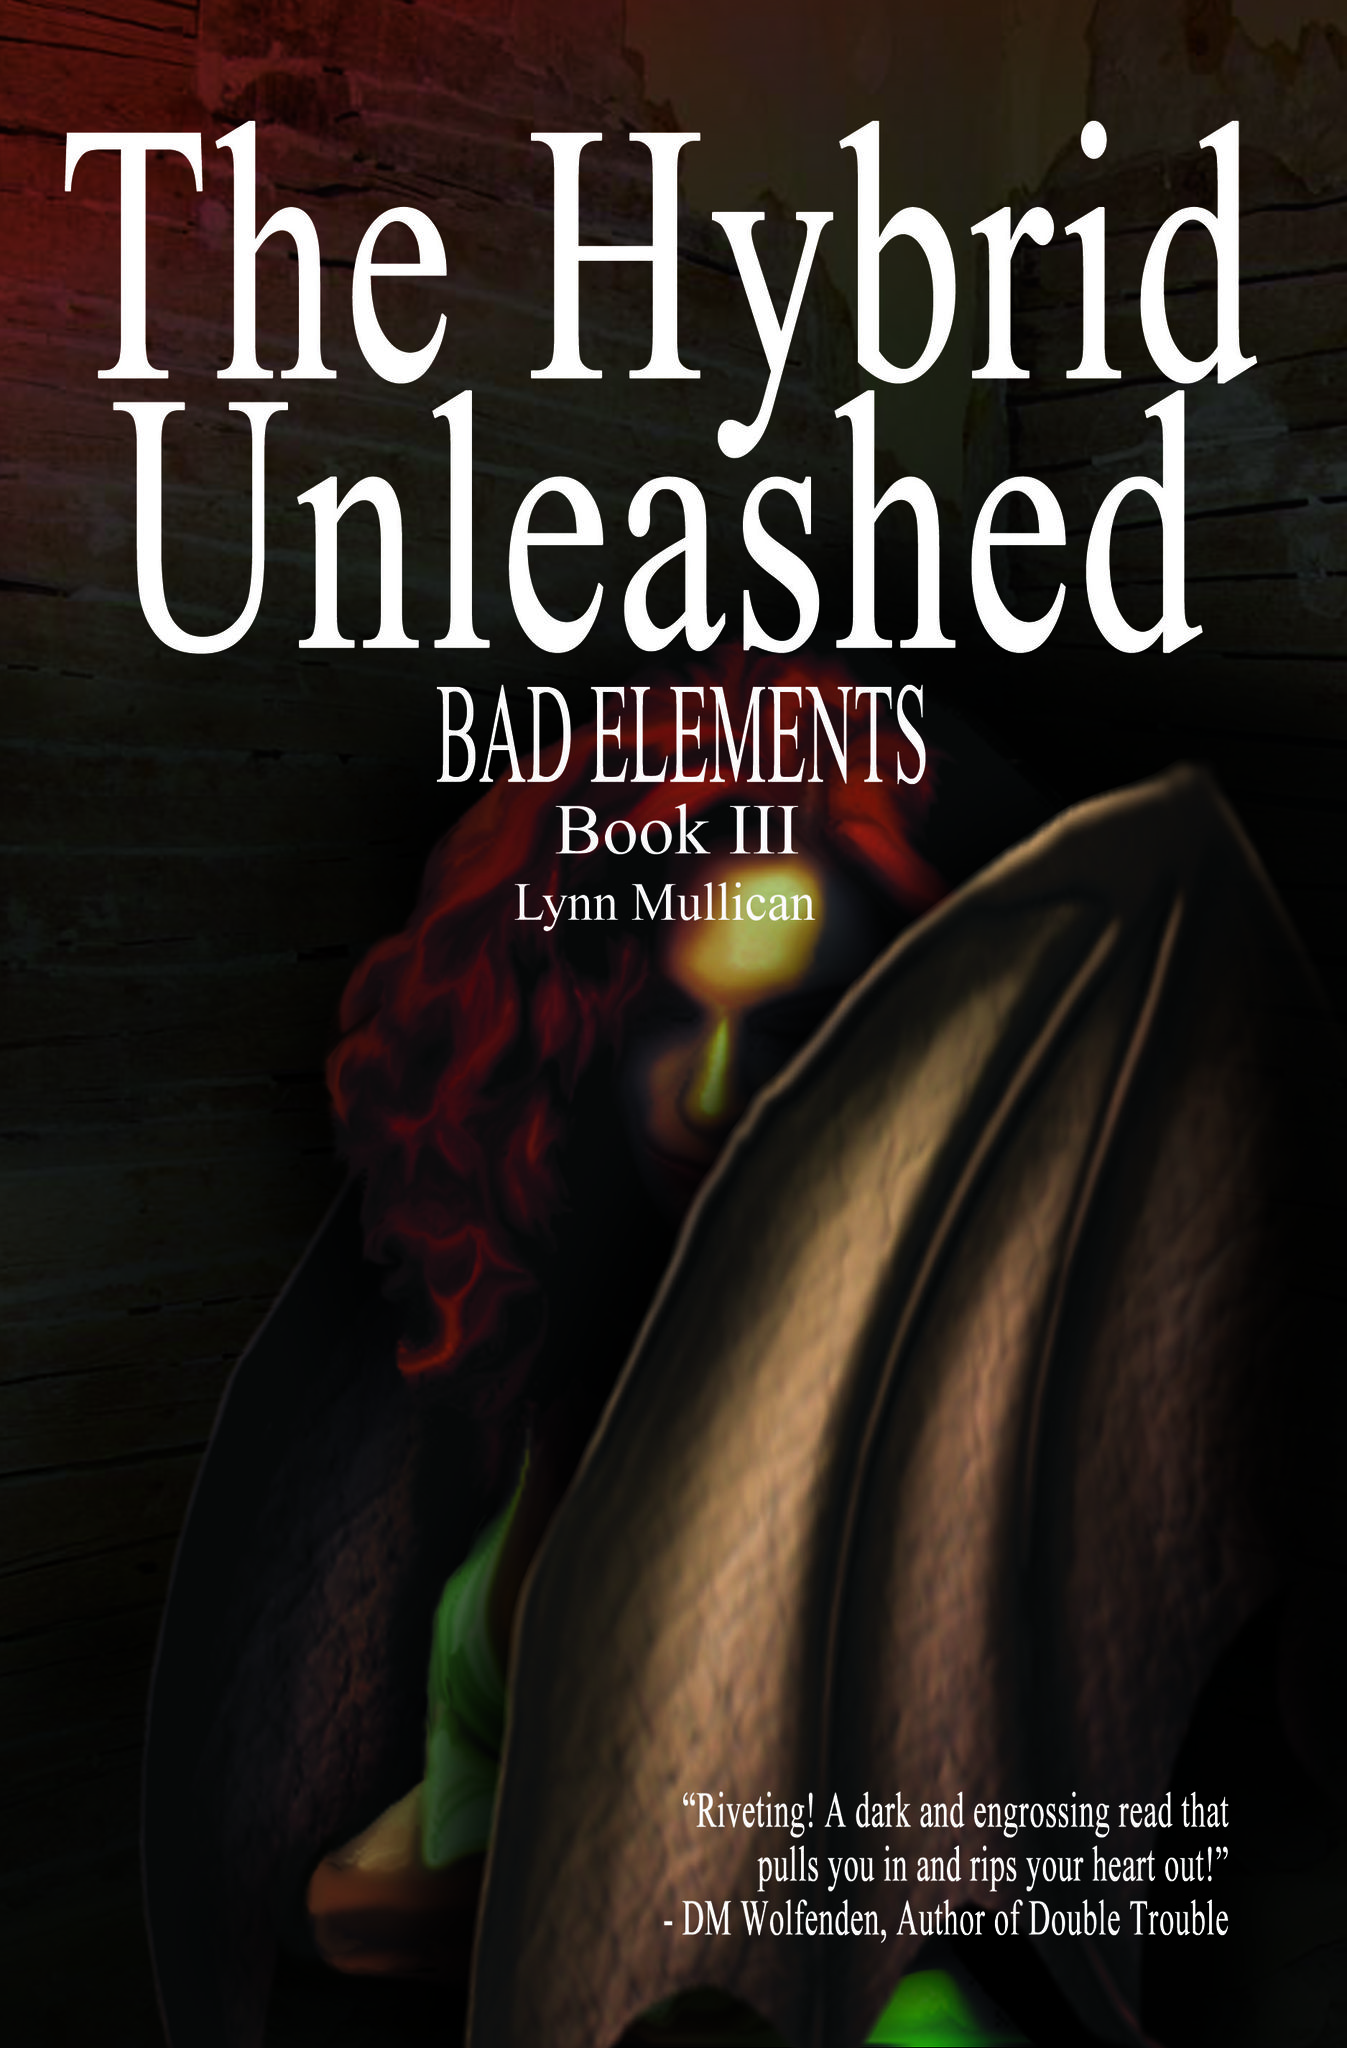 Bad Elements: The Hybrid Unleashed